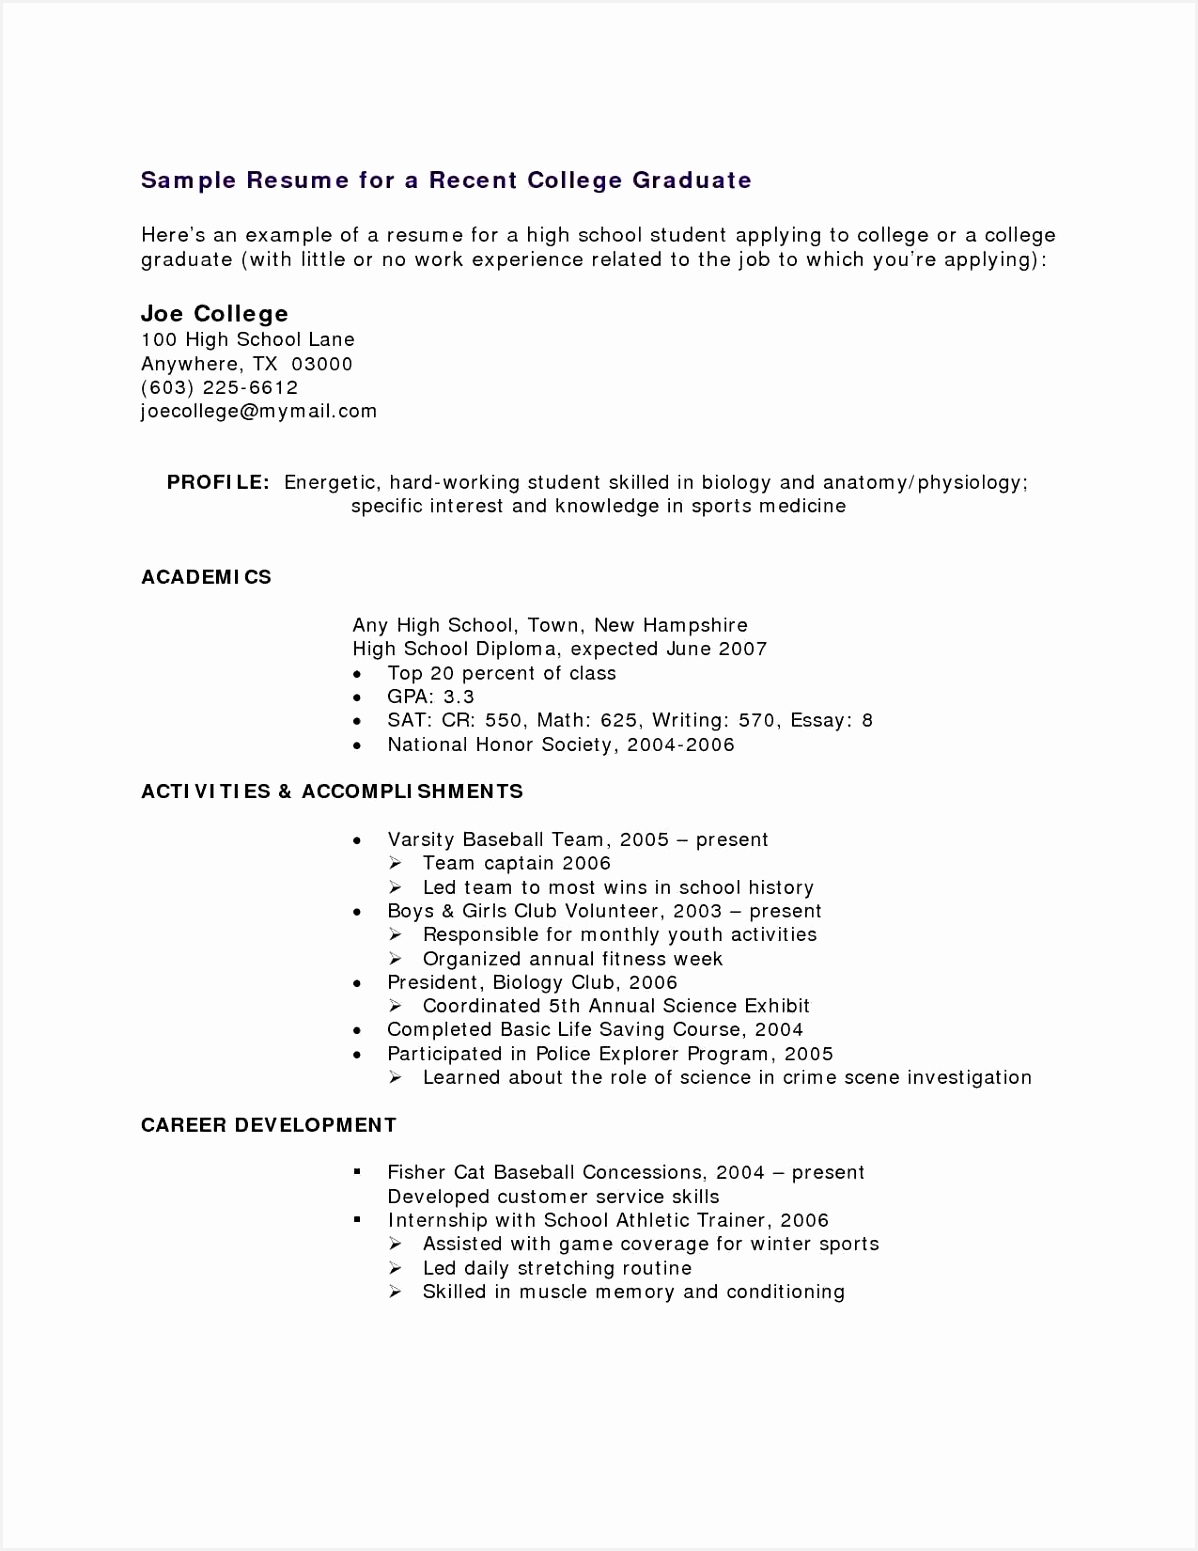 Student Affairs Resume Samples Best Resume Examples for Jobs with @ Resume Samples For Graduate School